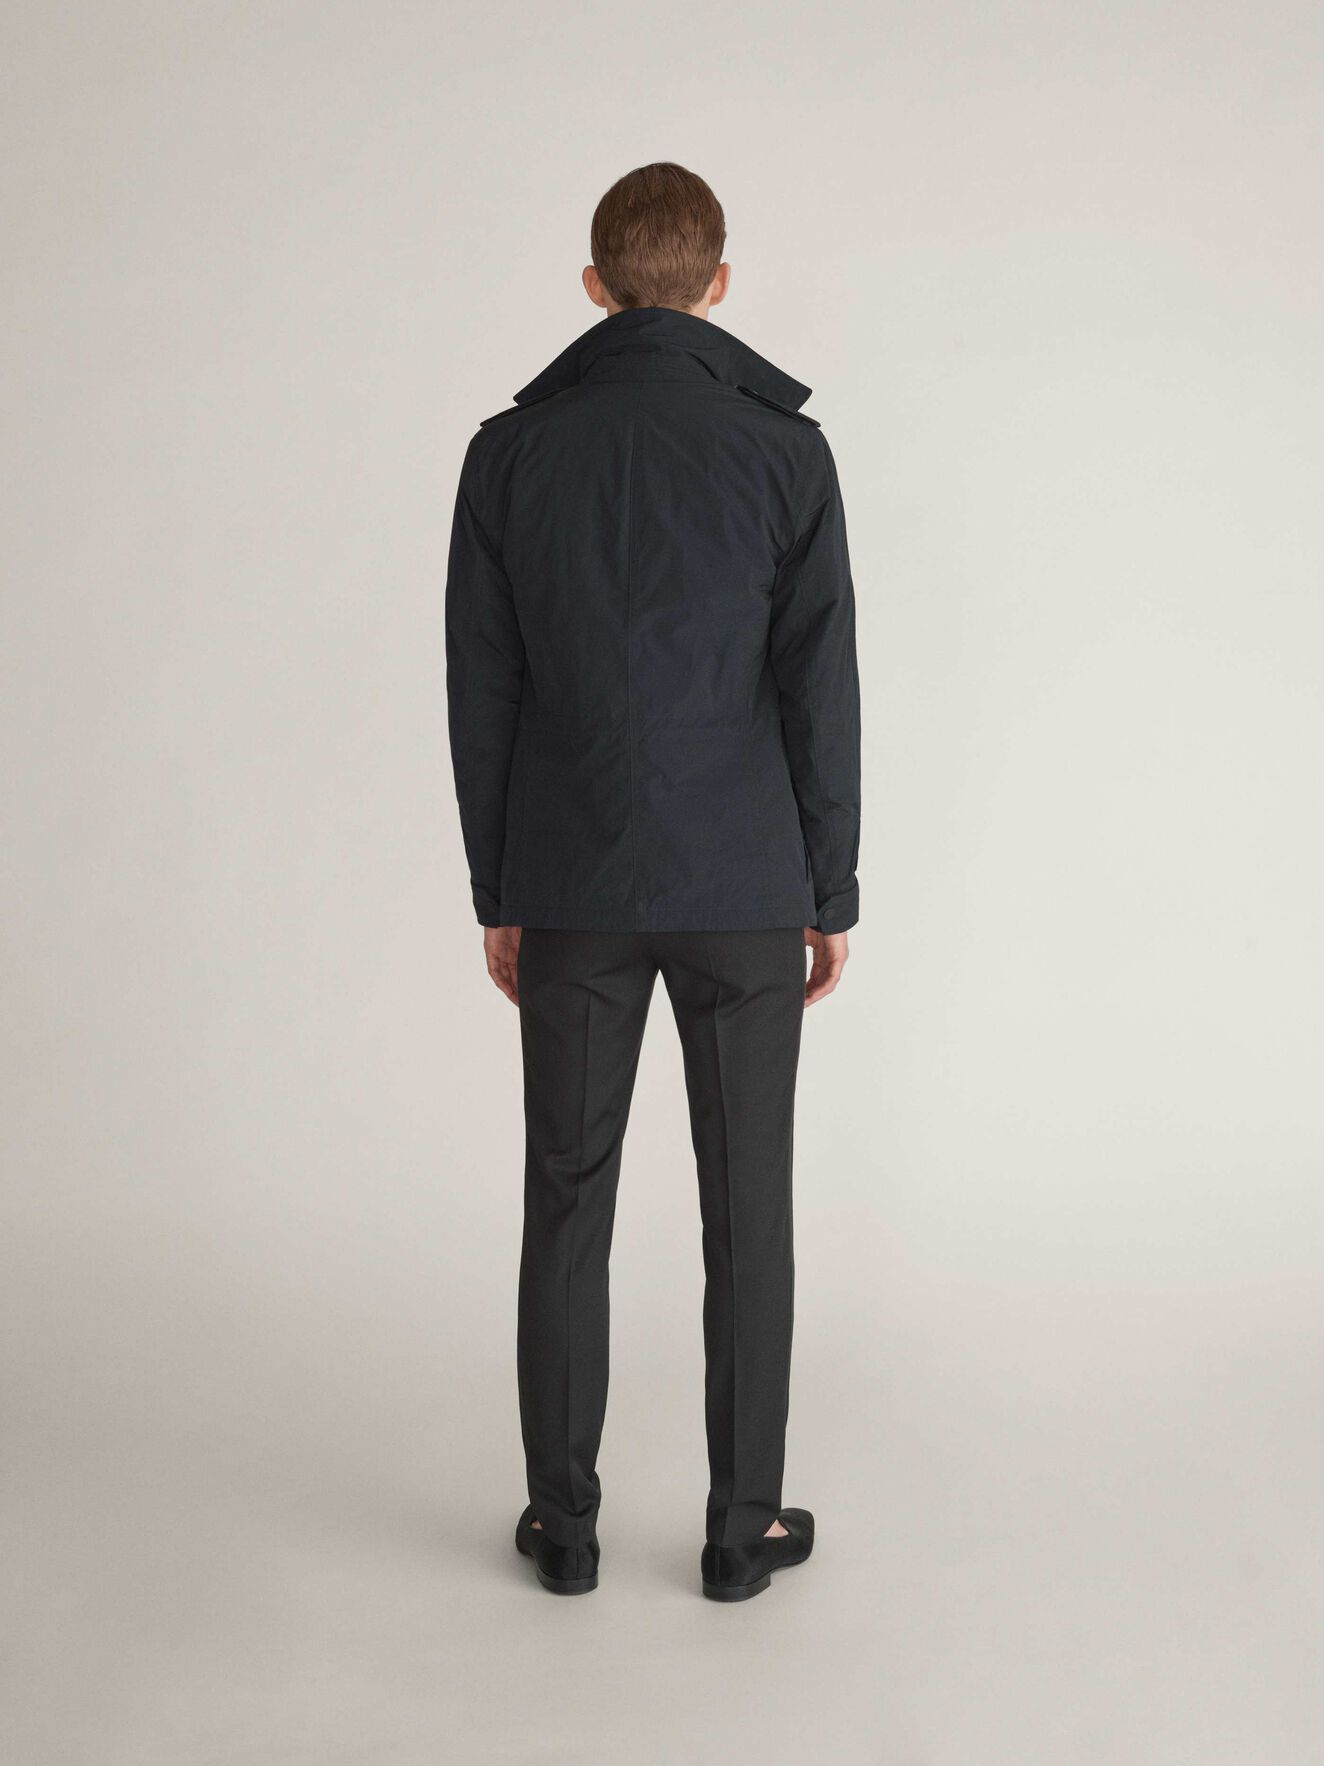 Ossien Jacket in Light Ink from Tiger of Sweden